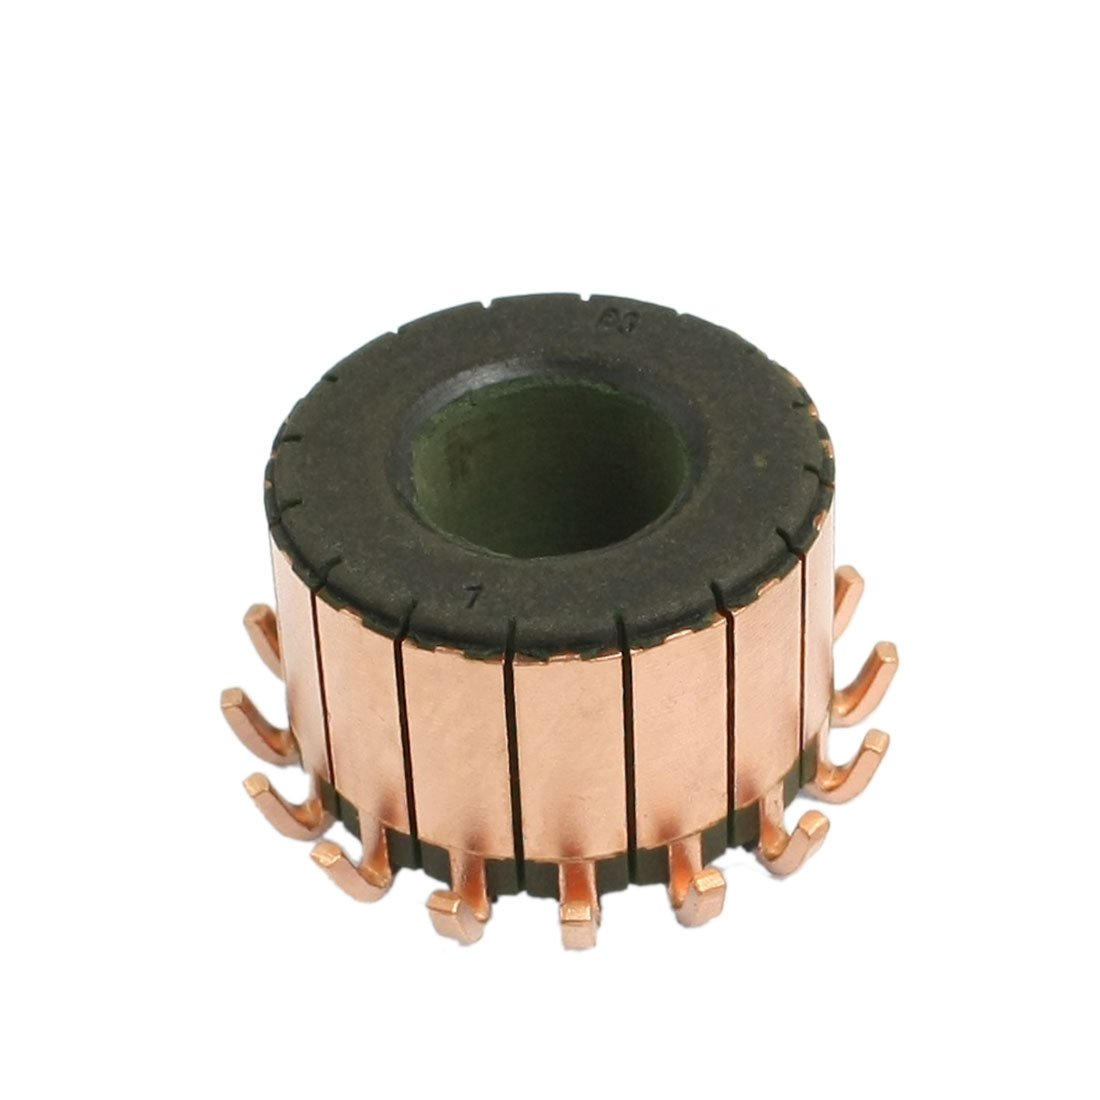 uxcell 15mm x 32mm x 22mm 16 Gear Tooth Copper Shell Electric Motor Commutator a12102200ux0835